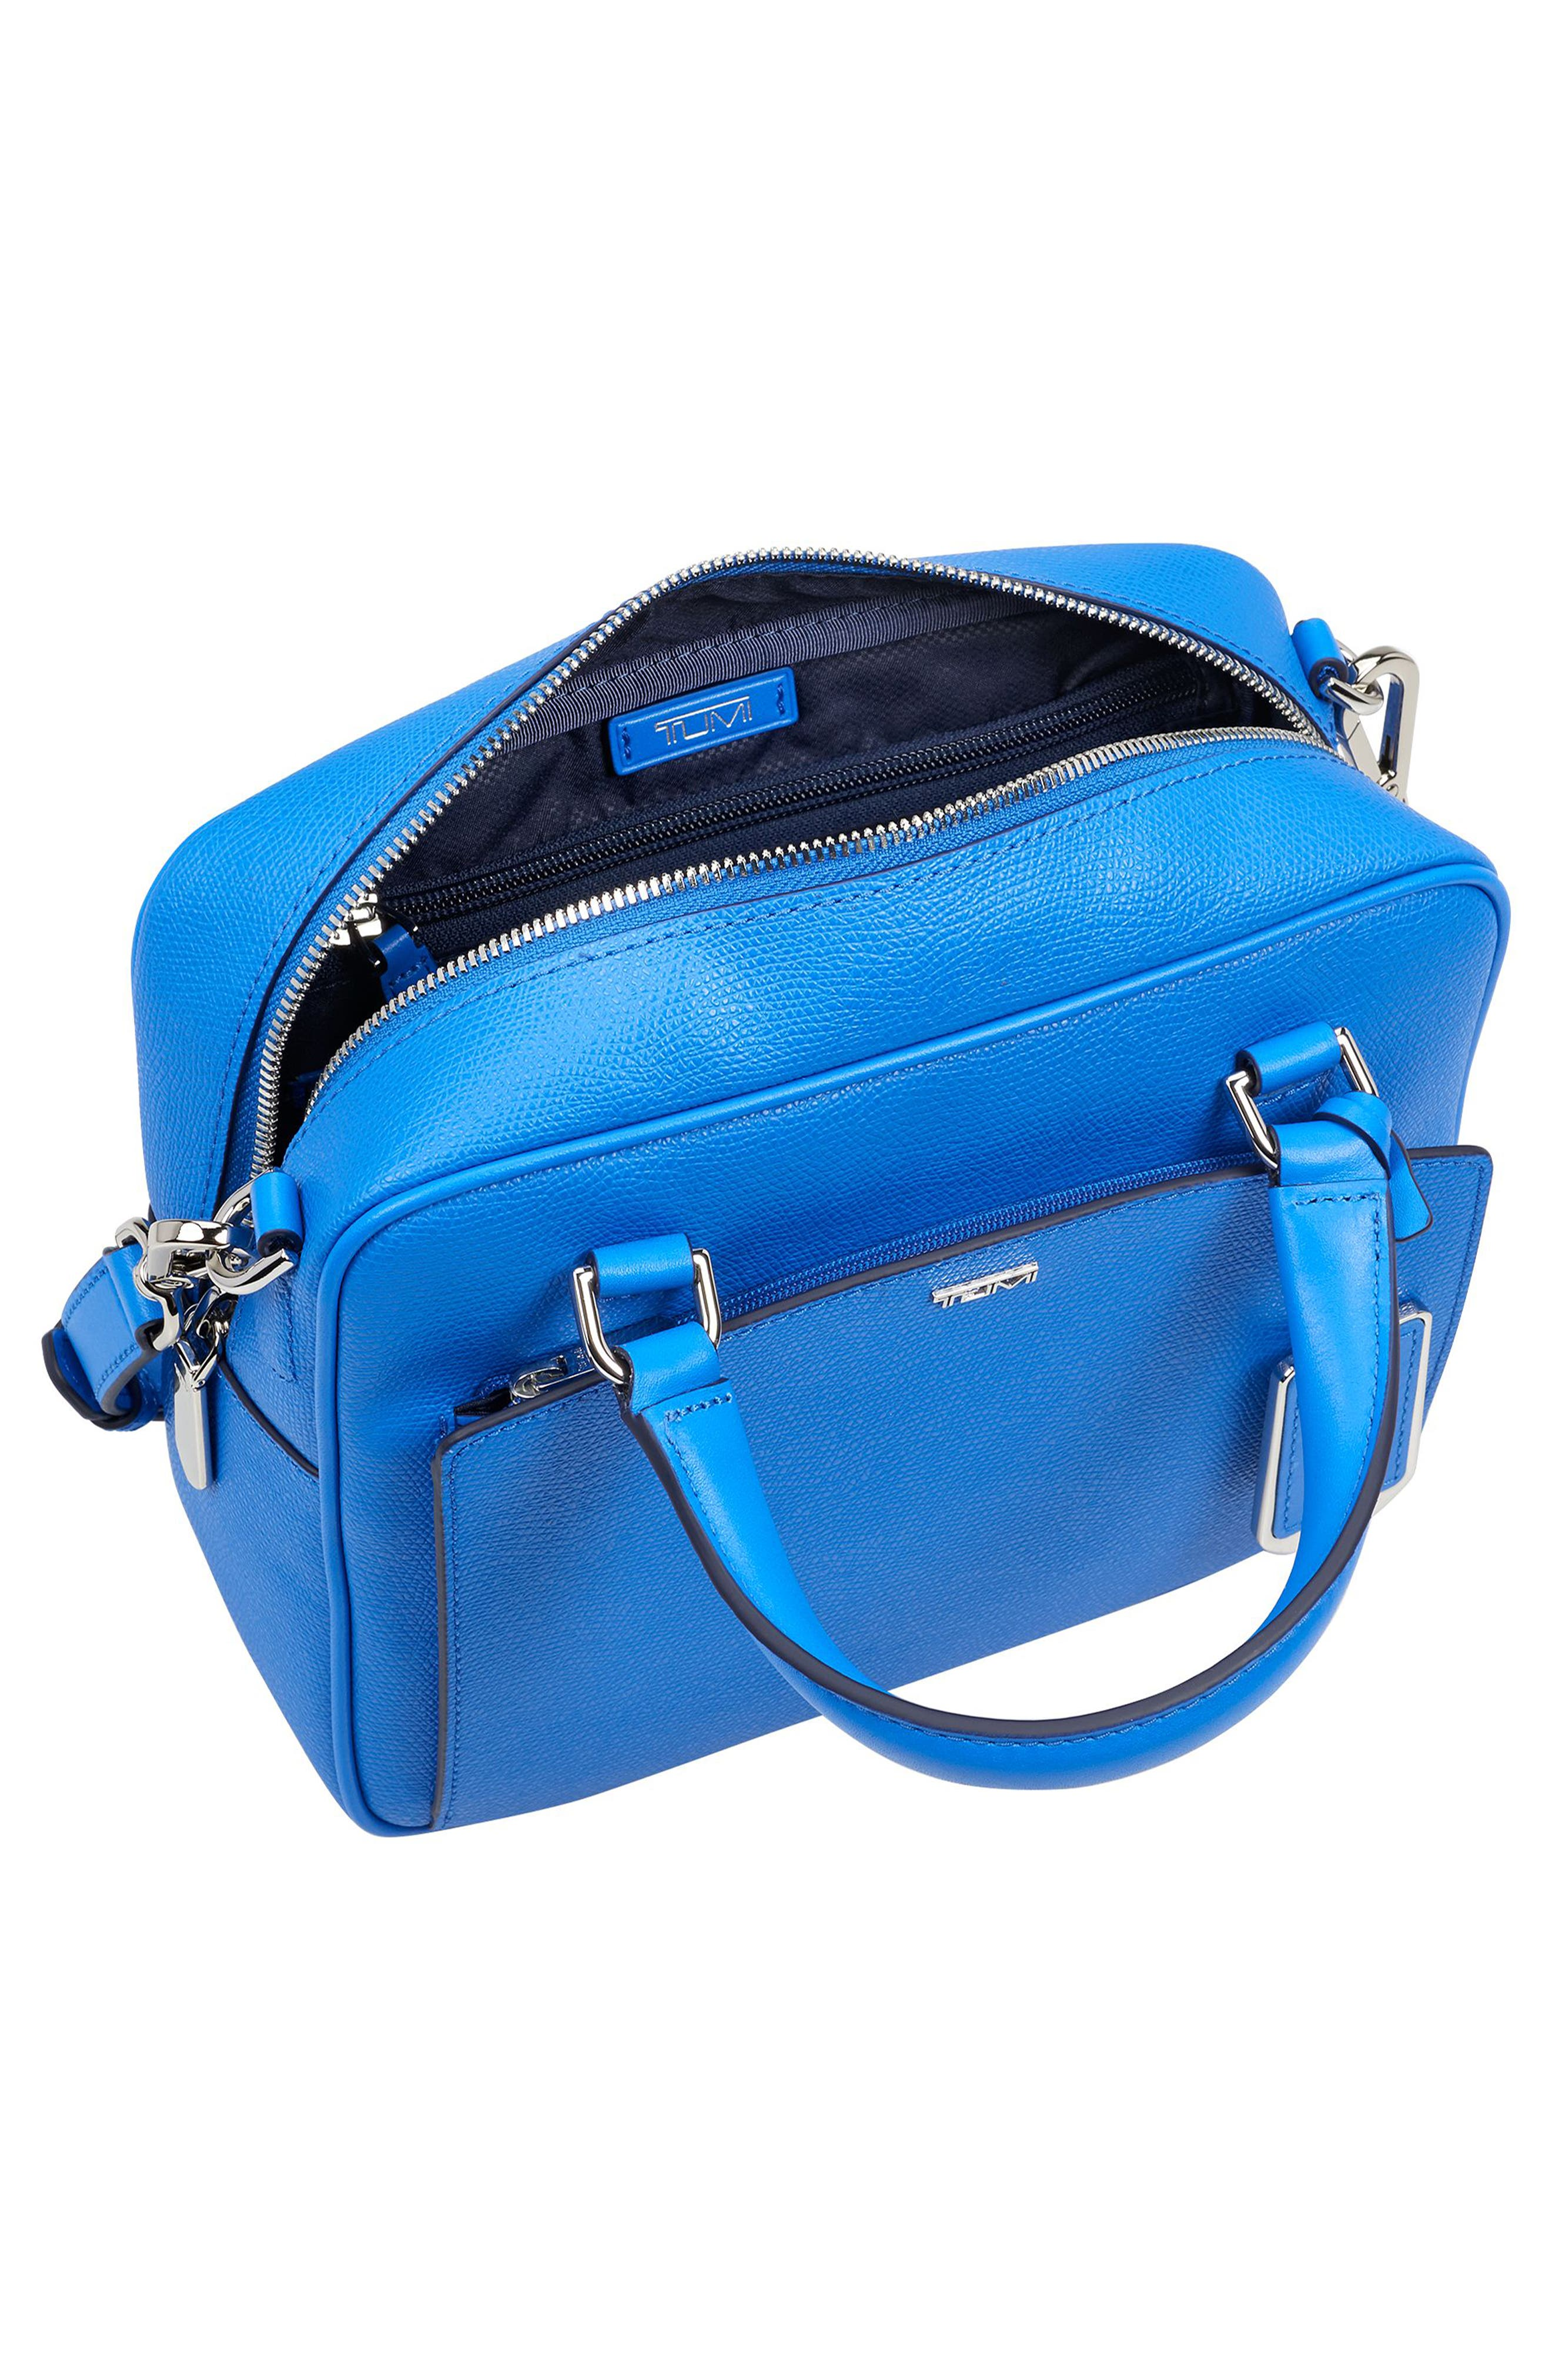 Aidan Coated Canvas Crossbody Bag,                             Alternate thumbnail 3, color,                             Electric Blue